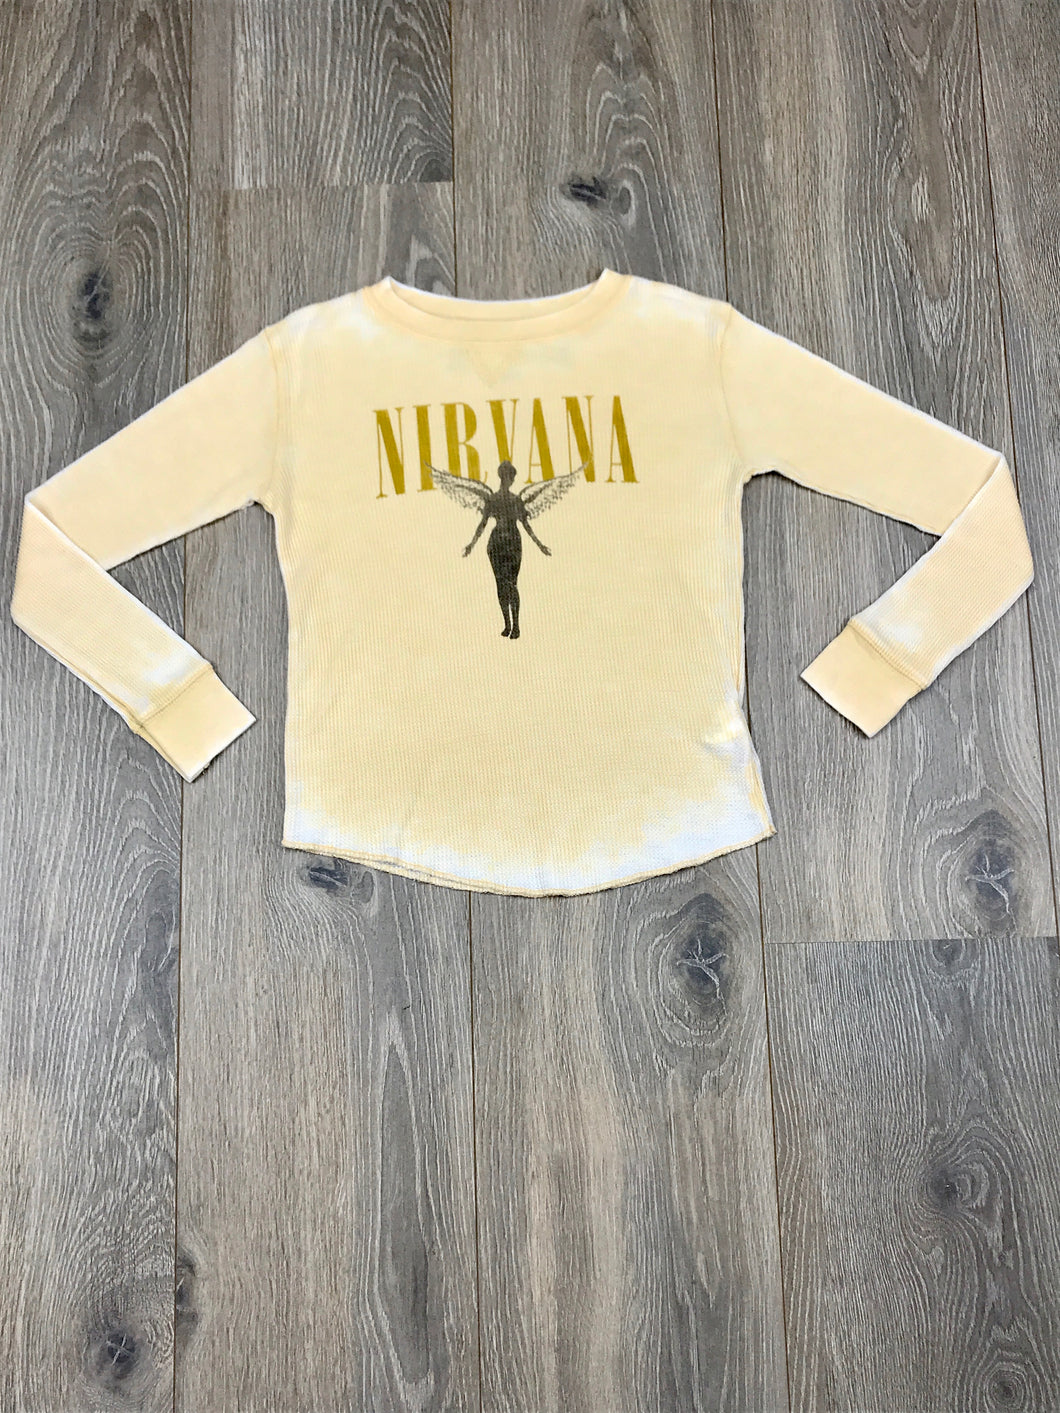 Rowdy Sprout Nirvana Kids Rocker Tee Long Sleeve